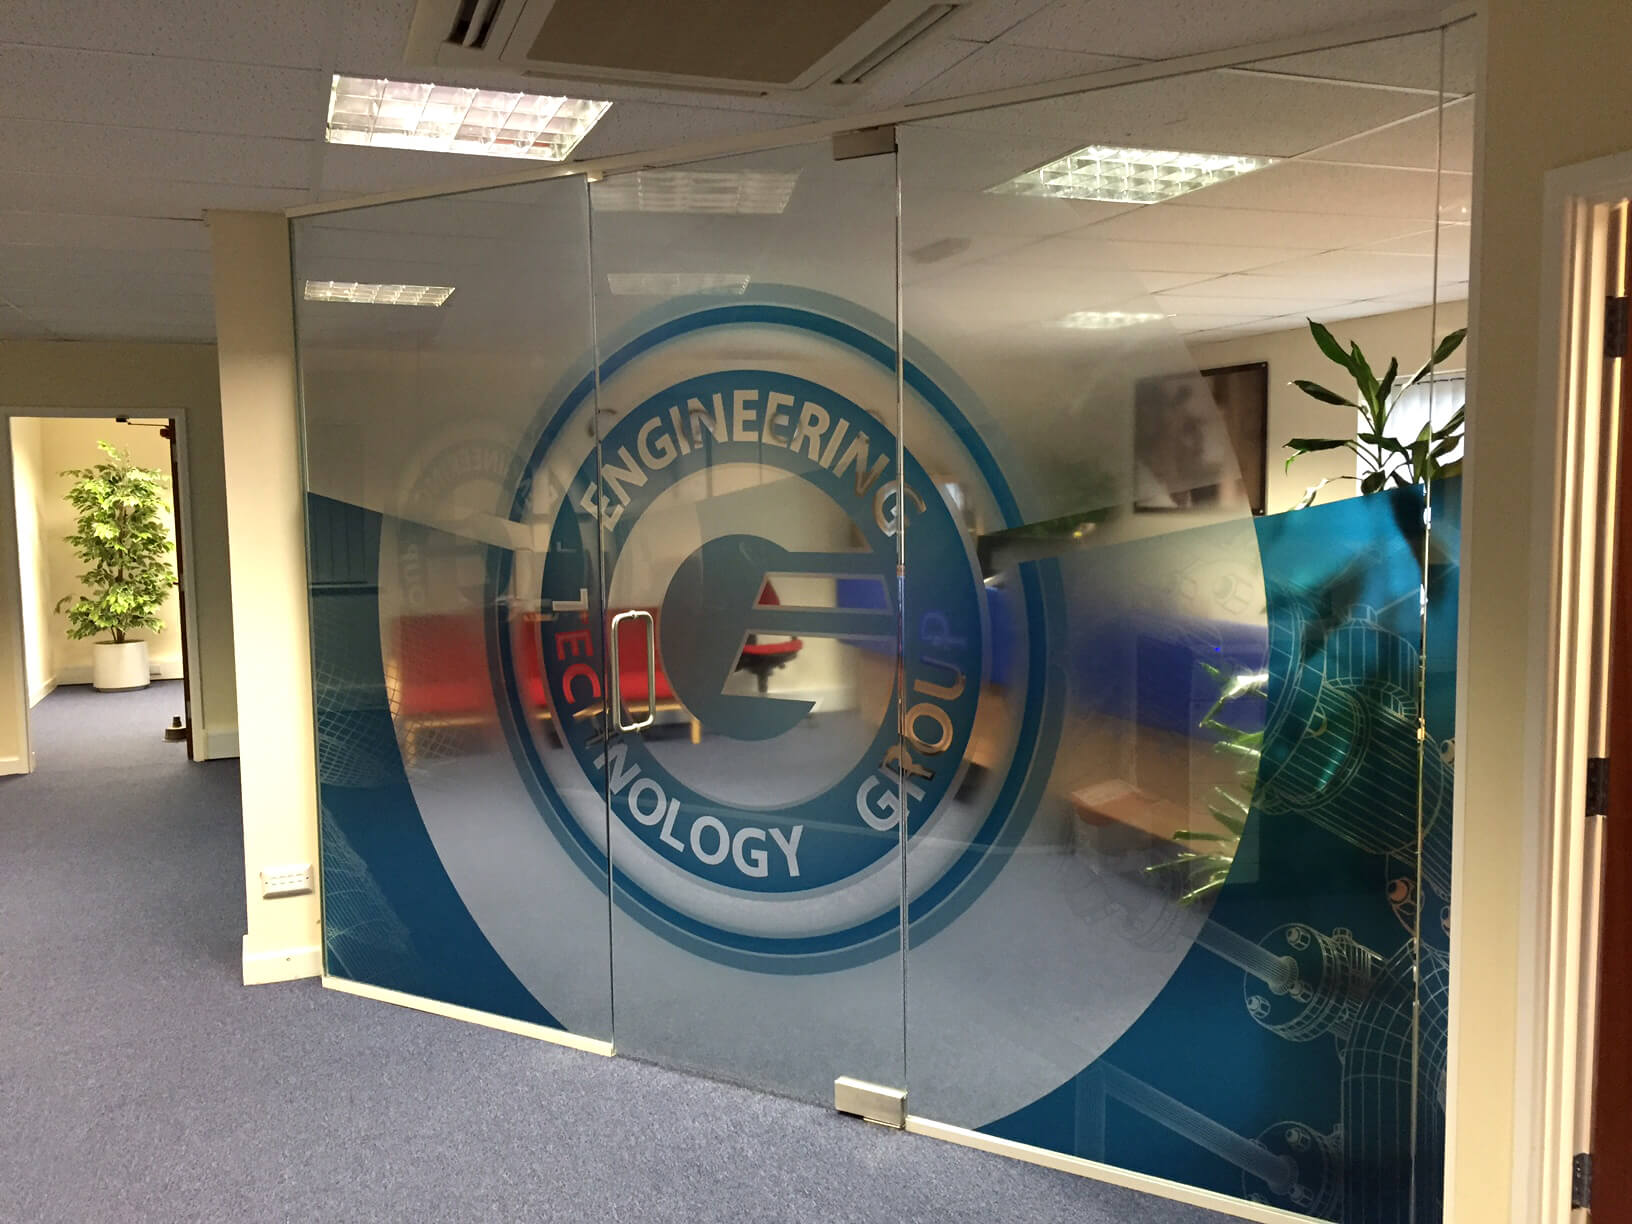 Branding, office partition graphics, window graphics